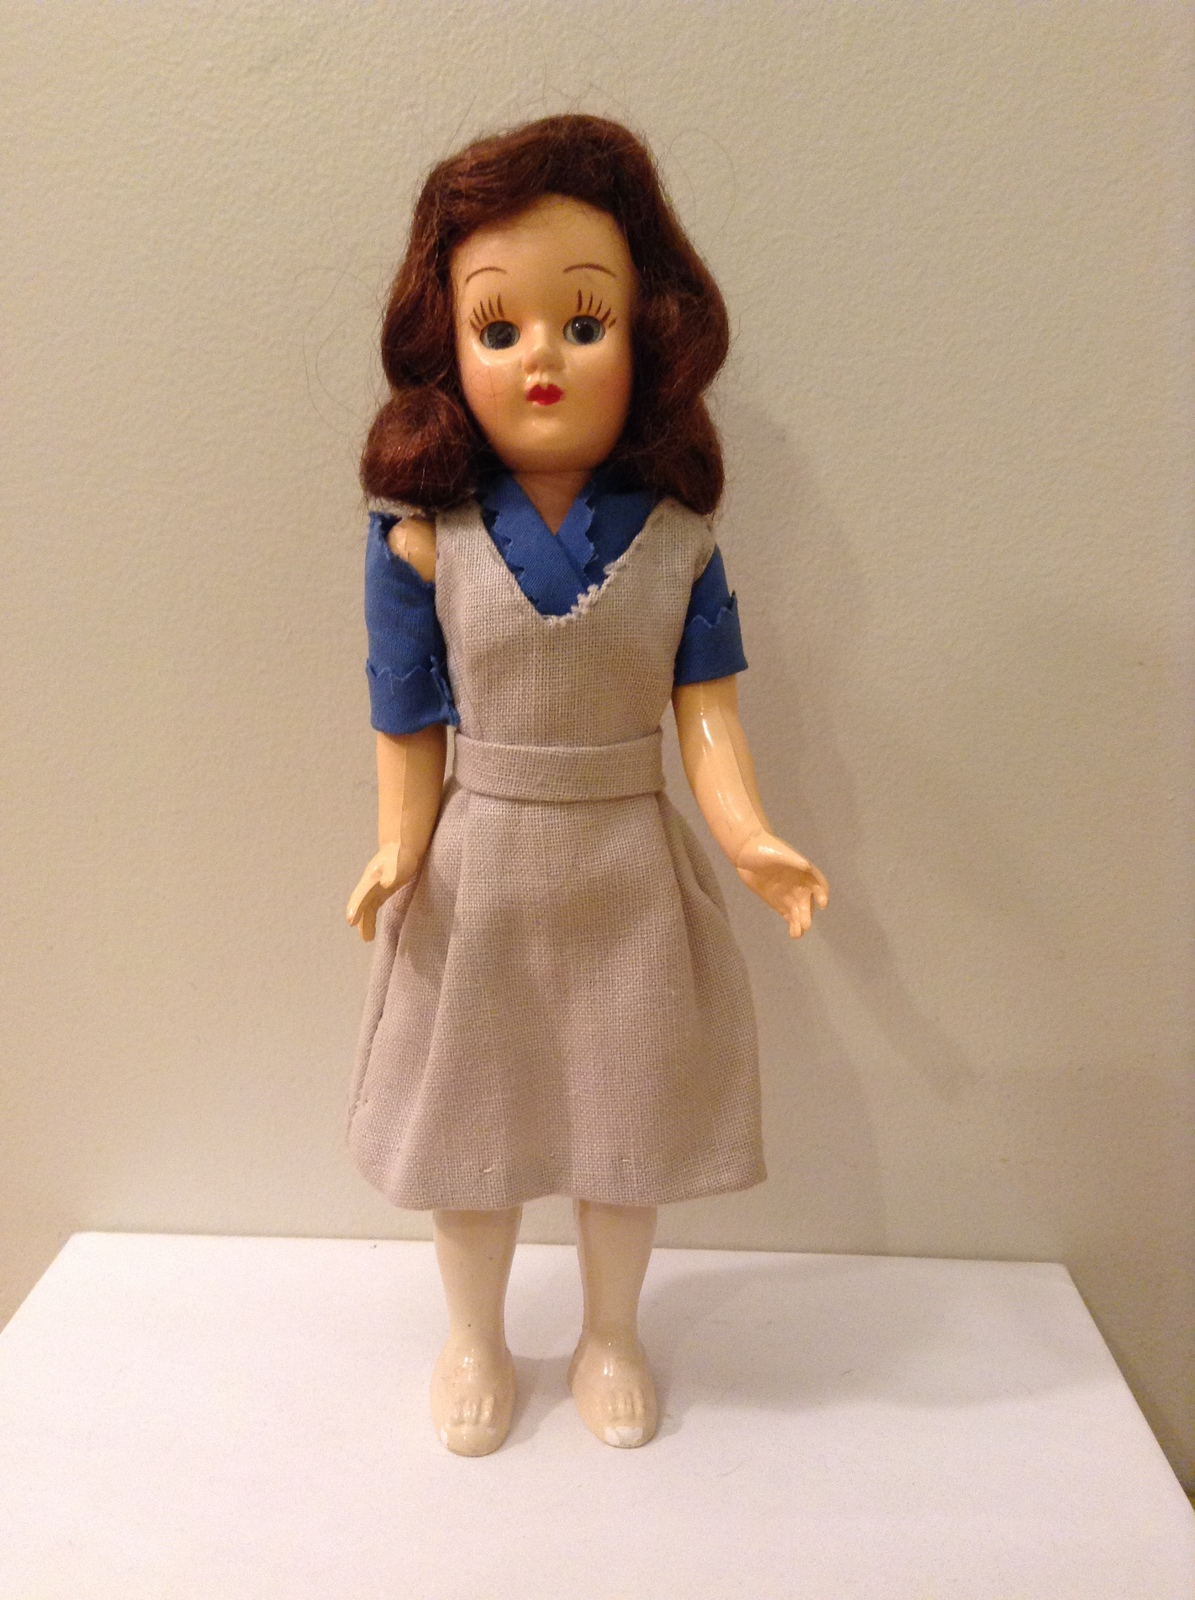 Vintage Collectible Doll with Automatic Closing Eyes Handmade Clothing